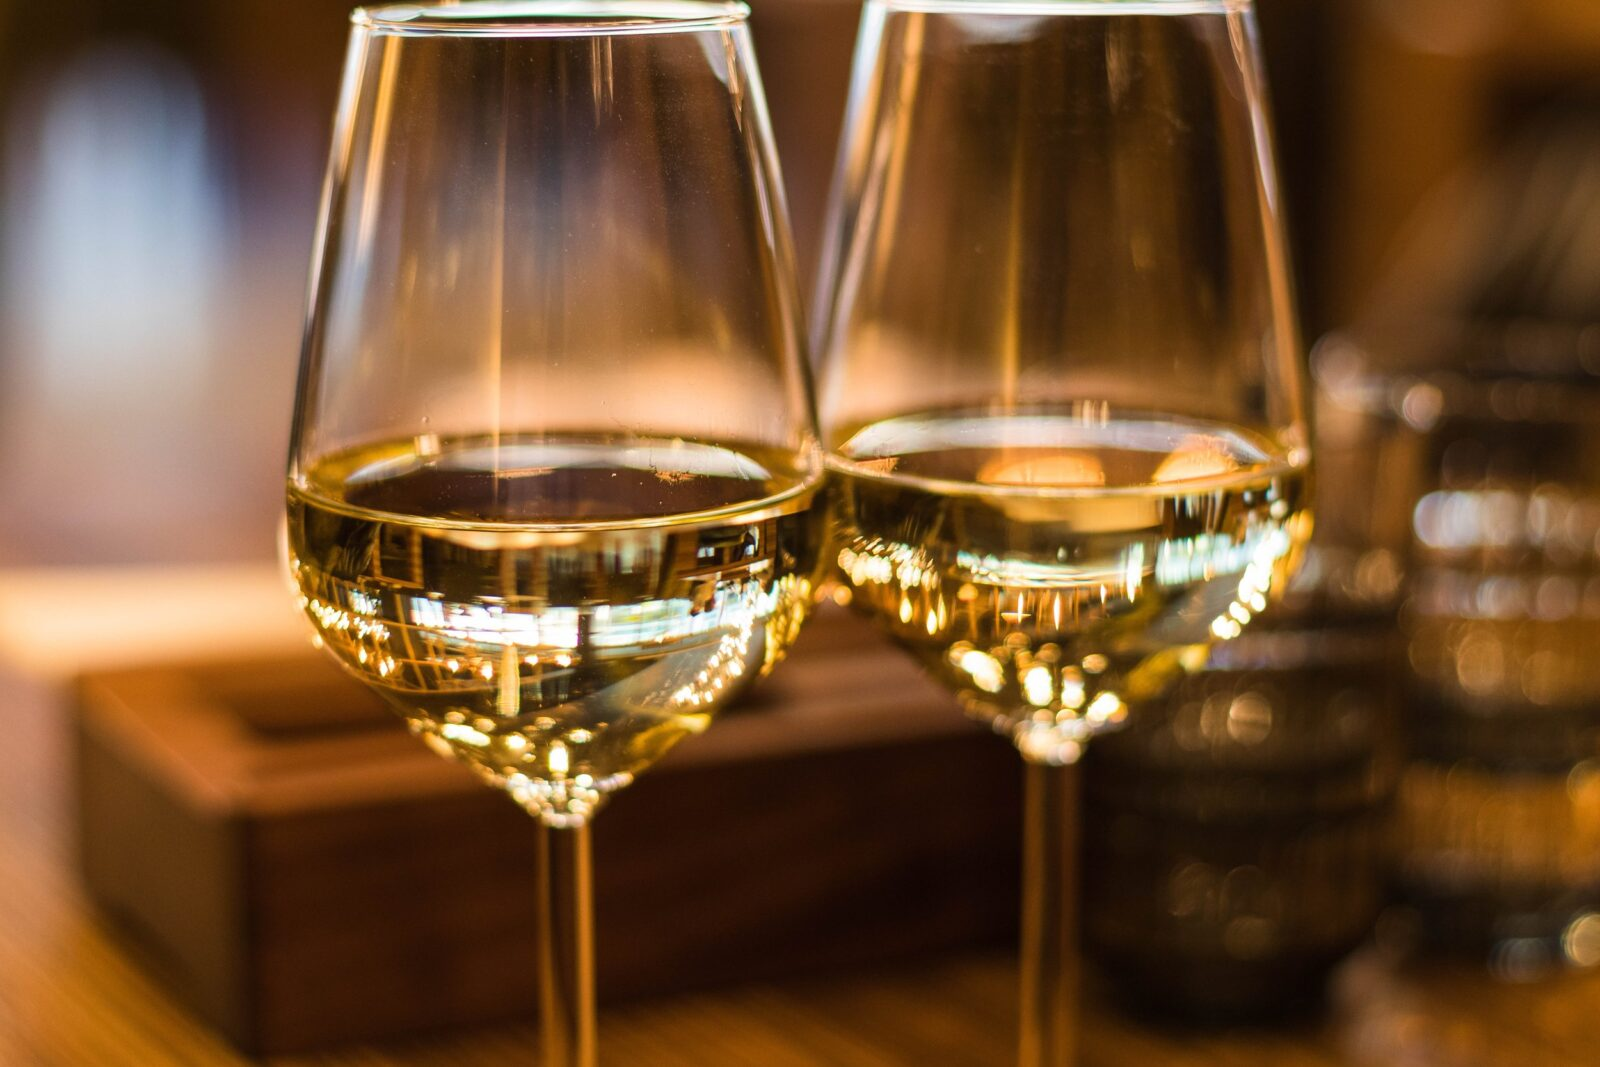 two glasses of new world white wine